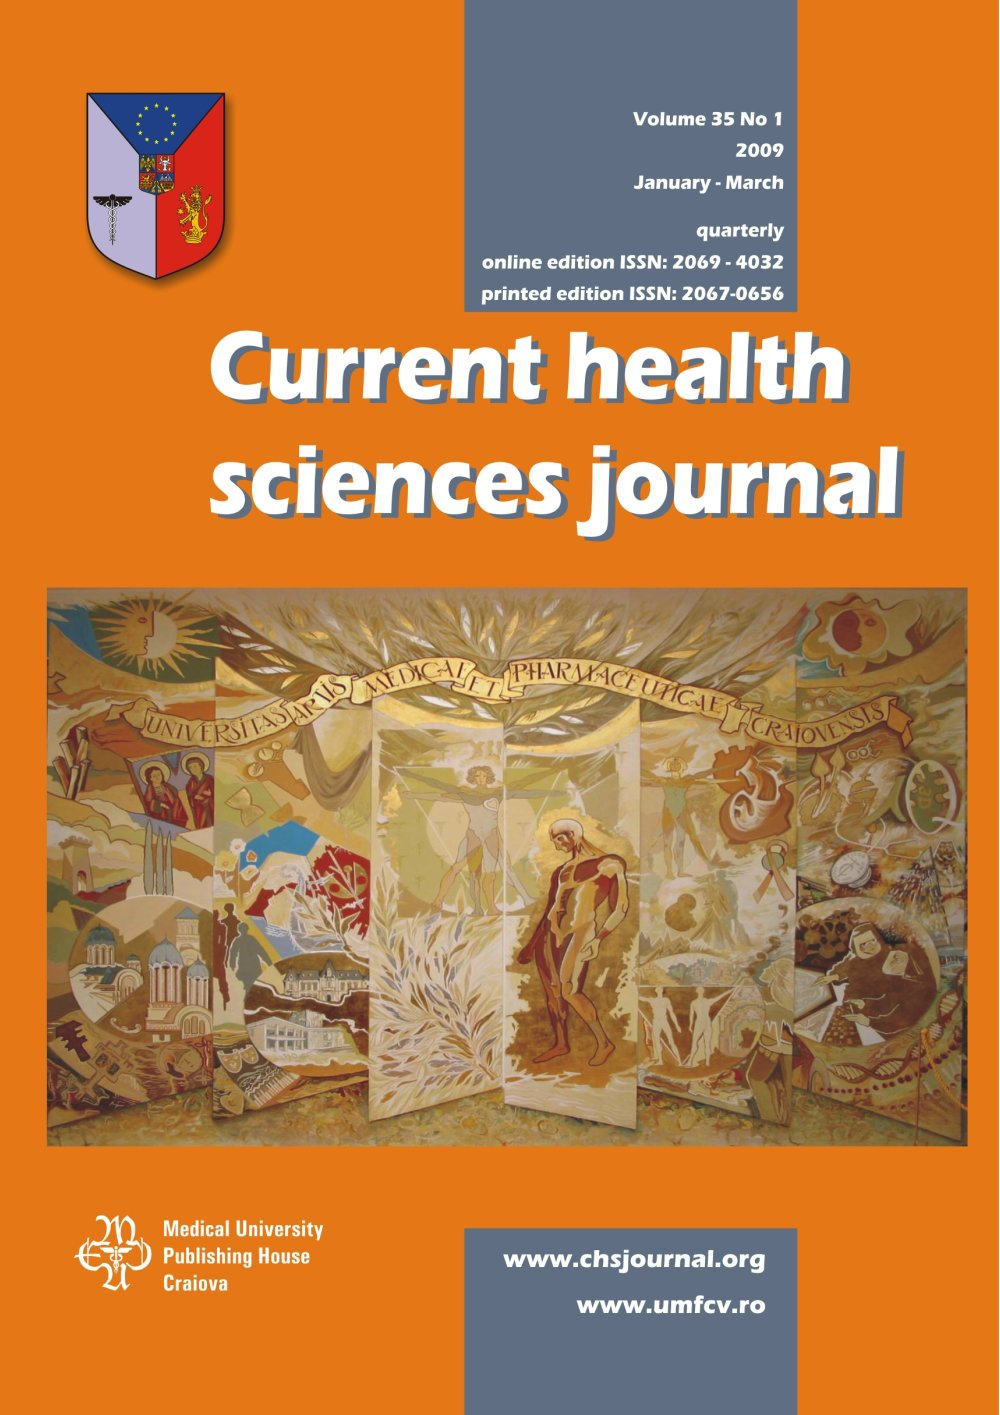 Current Health Sciences Journal, vol. 35 no. 1, 2009